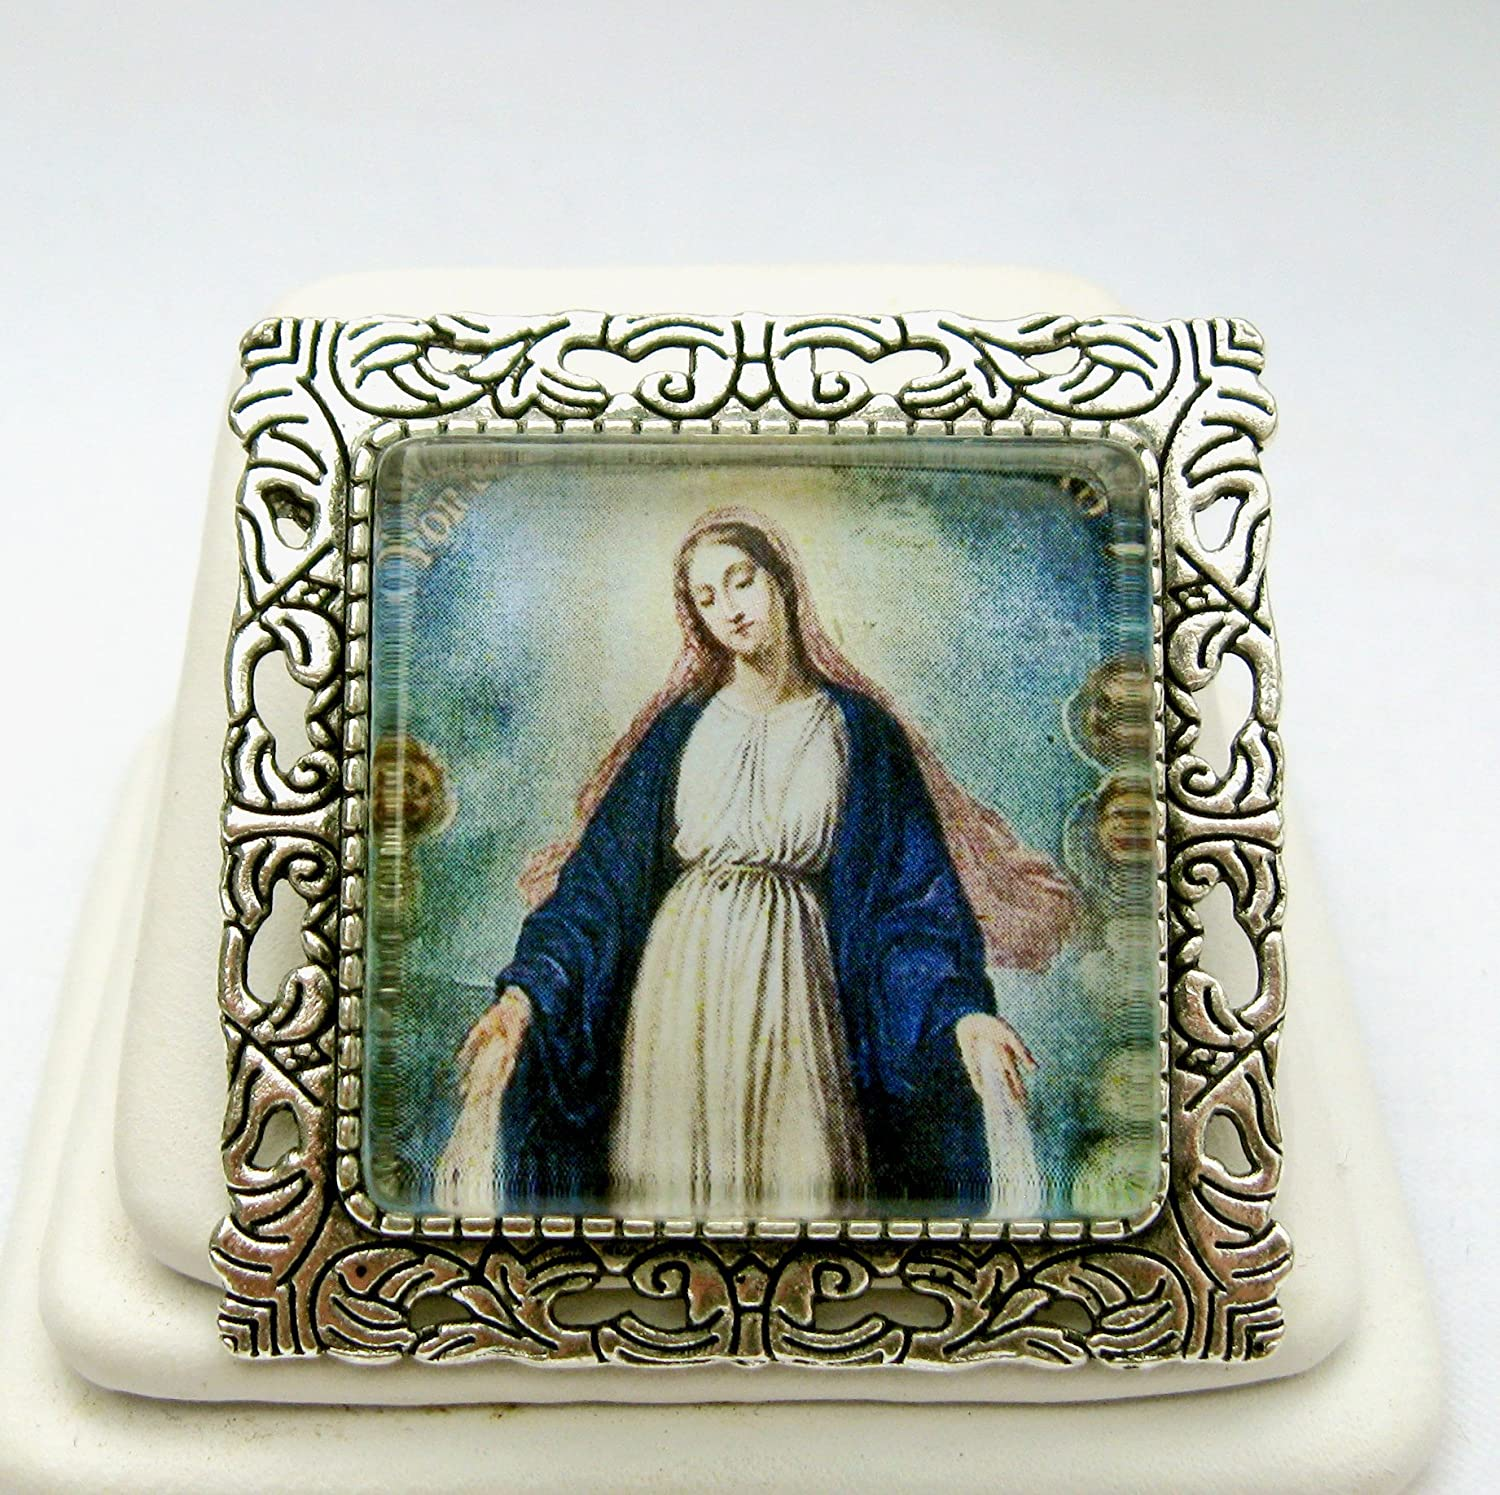 Miraculous Medal convertible brooch Fashion Max 41% OFF - AP35-045 pendant